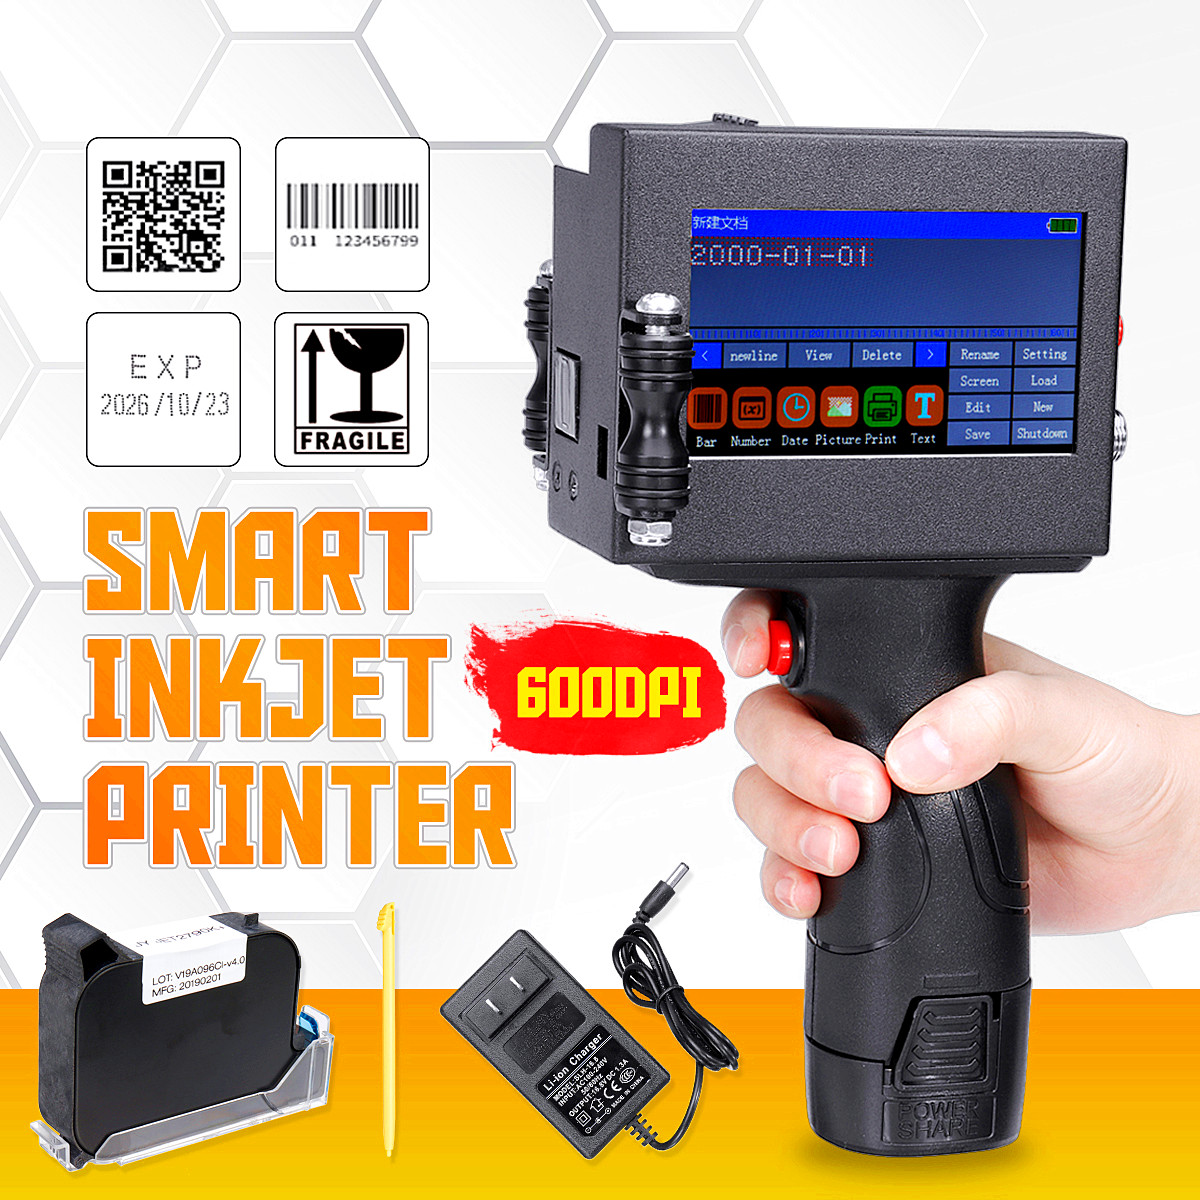 LED Display Screen Touch-Screen Handheld Printer Intelligent USB QR Code Inkjet Label Printer Coding Machine New Arrival 2019LED Display Screen Touch-Screen Handheld Printer Intelligent USB QR Code Inkjet Label Printer Coding Machine New Arrival 2019